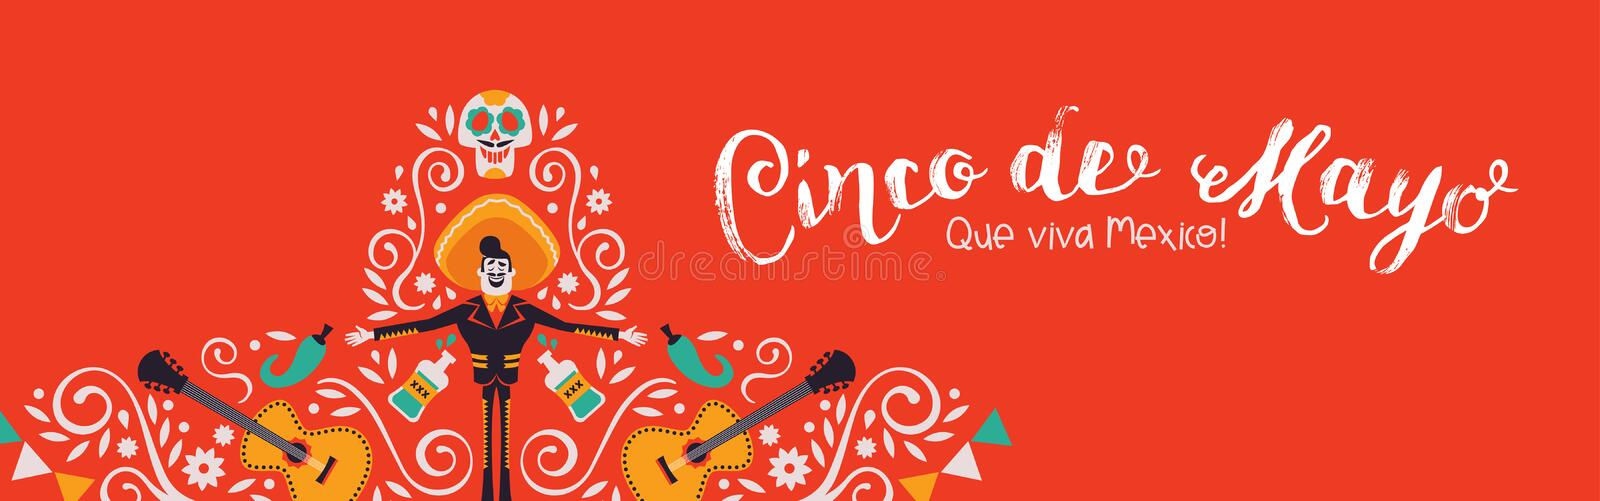 Cinco de Mayo banner of mariachi hat decoration. Cinco de Mayo web banner illustration for Mexican independence celebration. Traditional hat shape made of mexico royalty free illustration